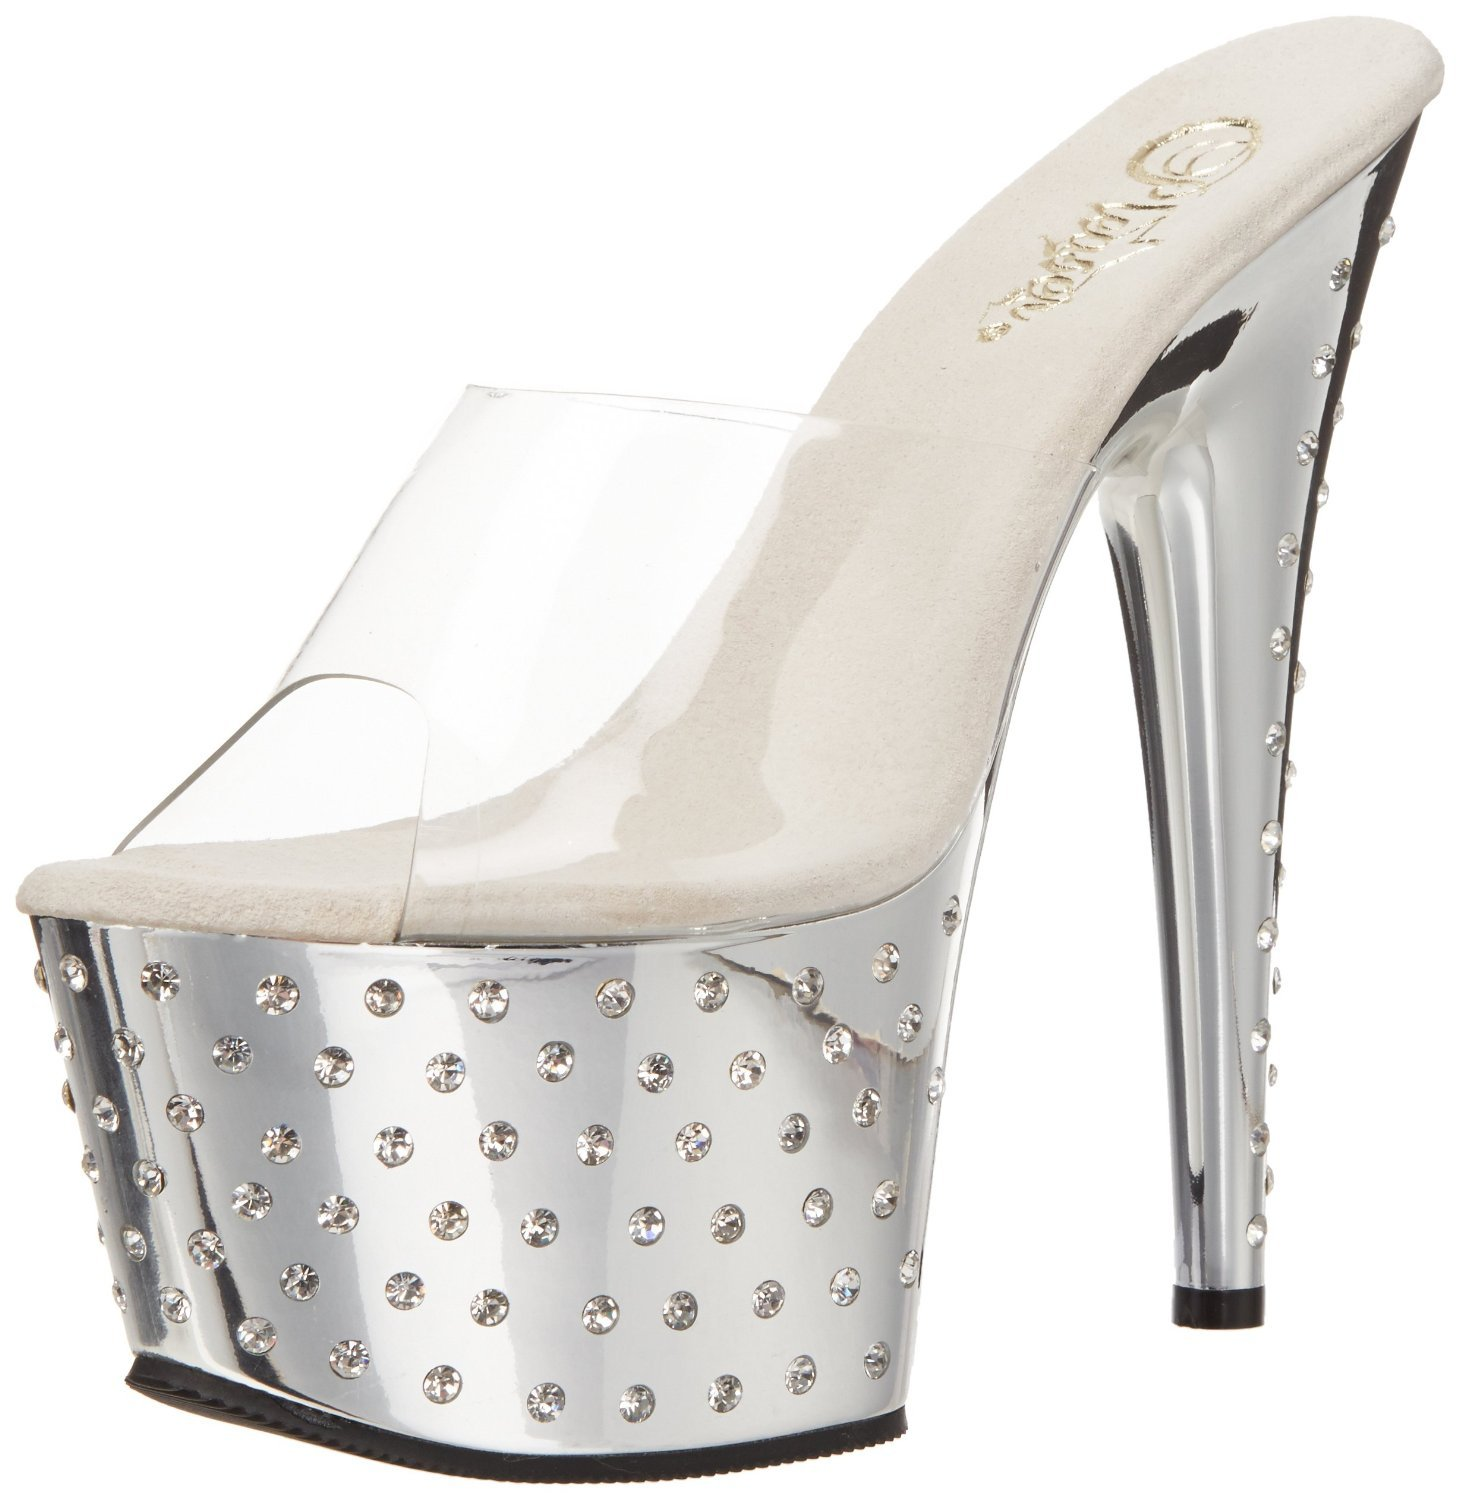 Pleaser STARDUST-701 Women Sandal B00HV9VJD0 8 B(M) US|Clear/Silver Chrome